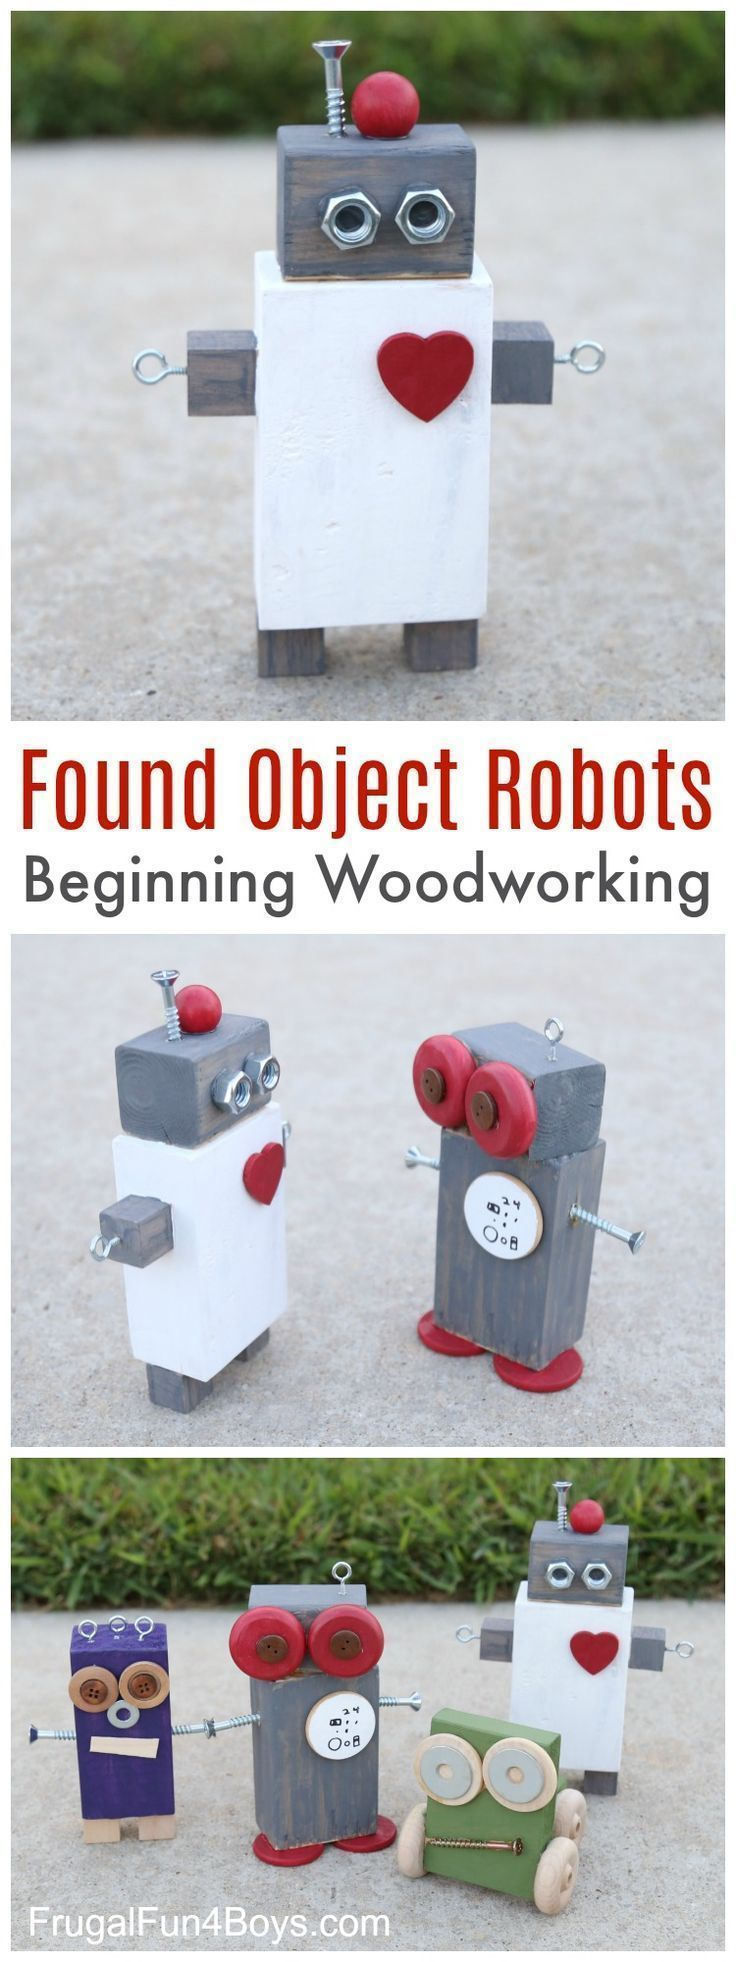 Found Object Robots: Start of the woodworking project for children #woodworkingforkids